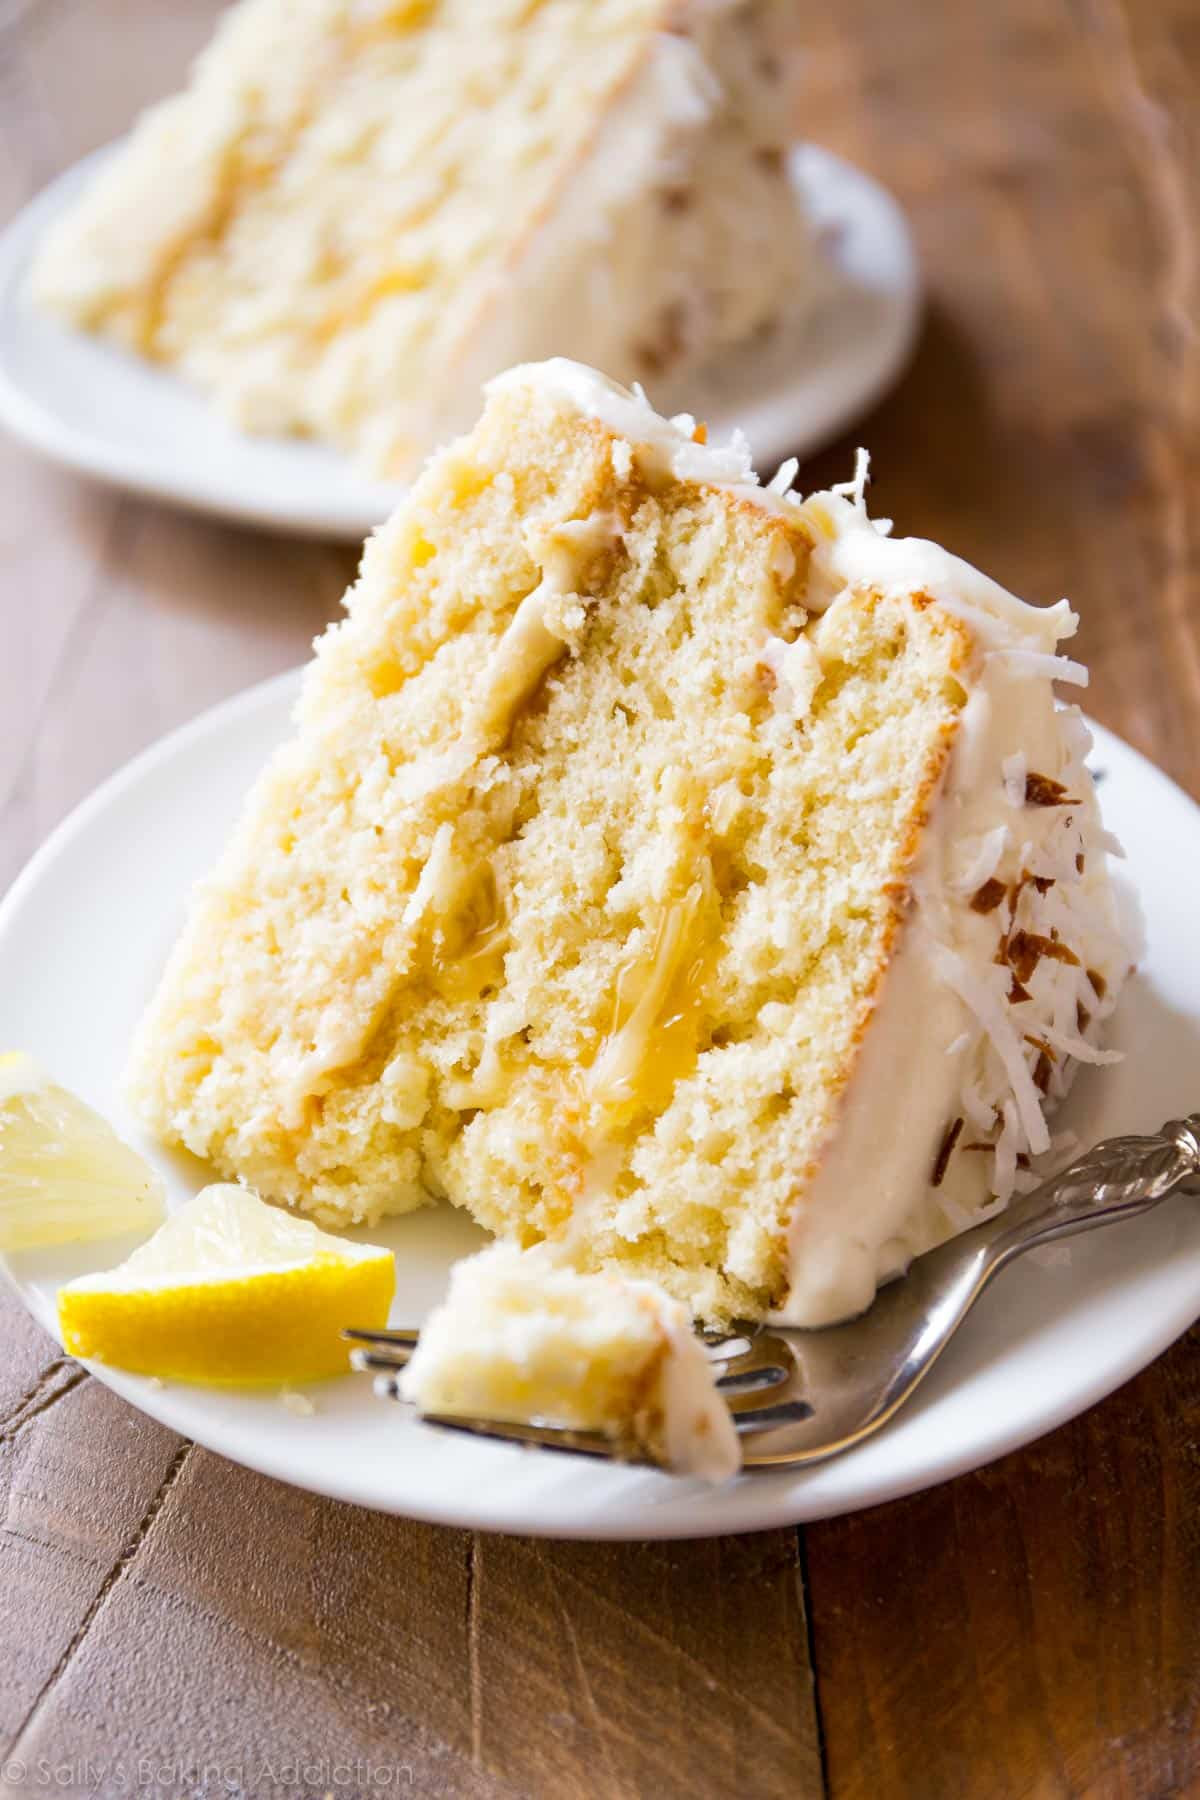 Lemon coconut cake, with deliciously moist coconut cake layers, homemade lemon curd, toasted coconut and cream cheese frosting, is a family favorite! sallysbakingaddiction.com